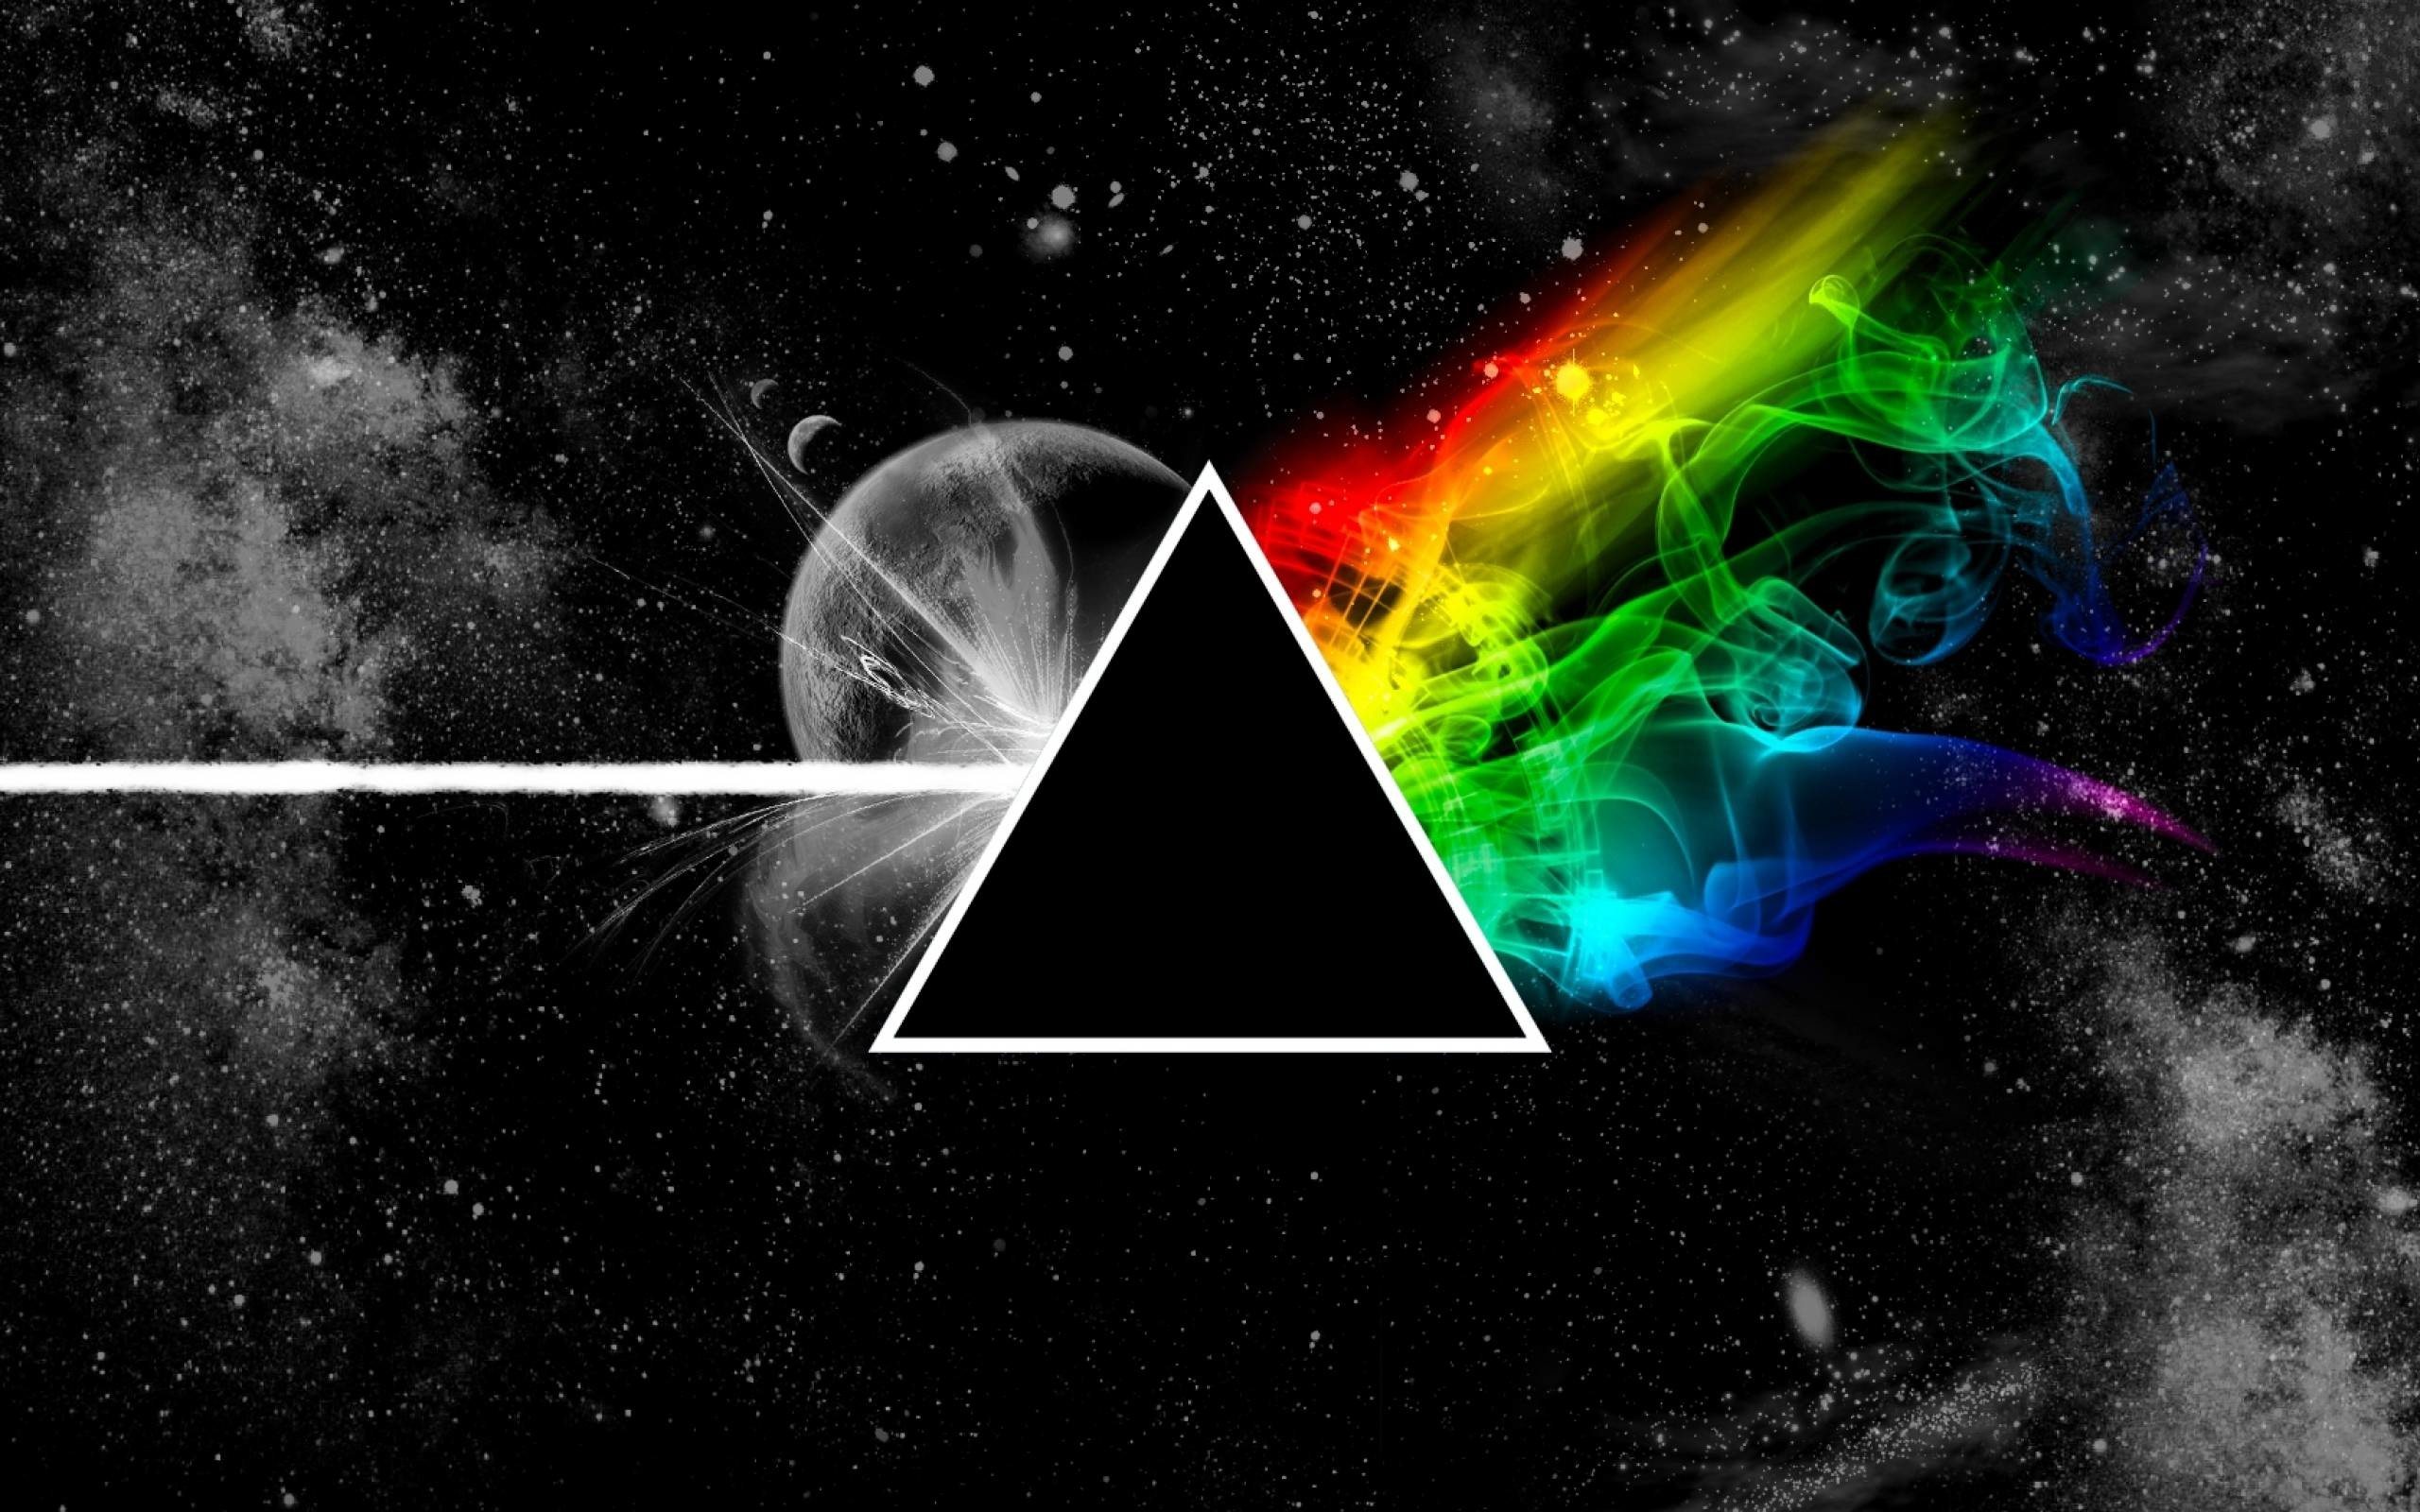 2560x1600 Pink Floyd Wallpapers - Full HD wallpaper search